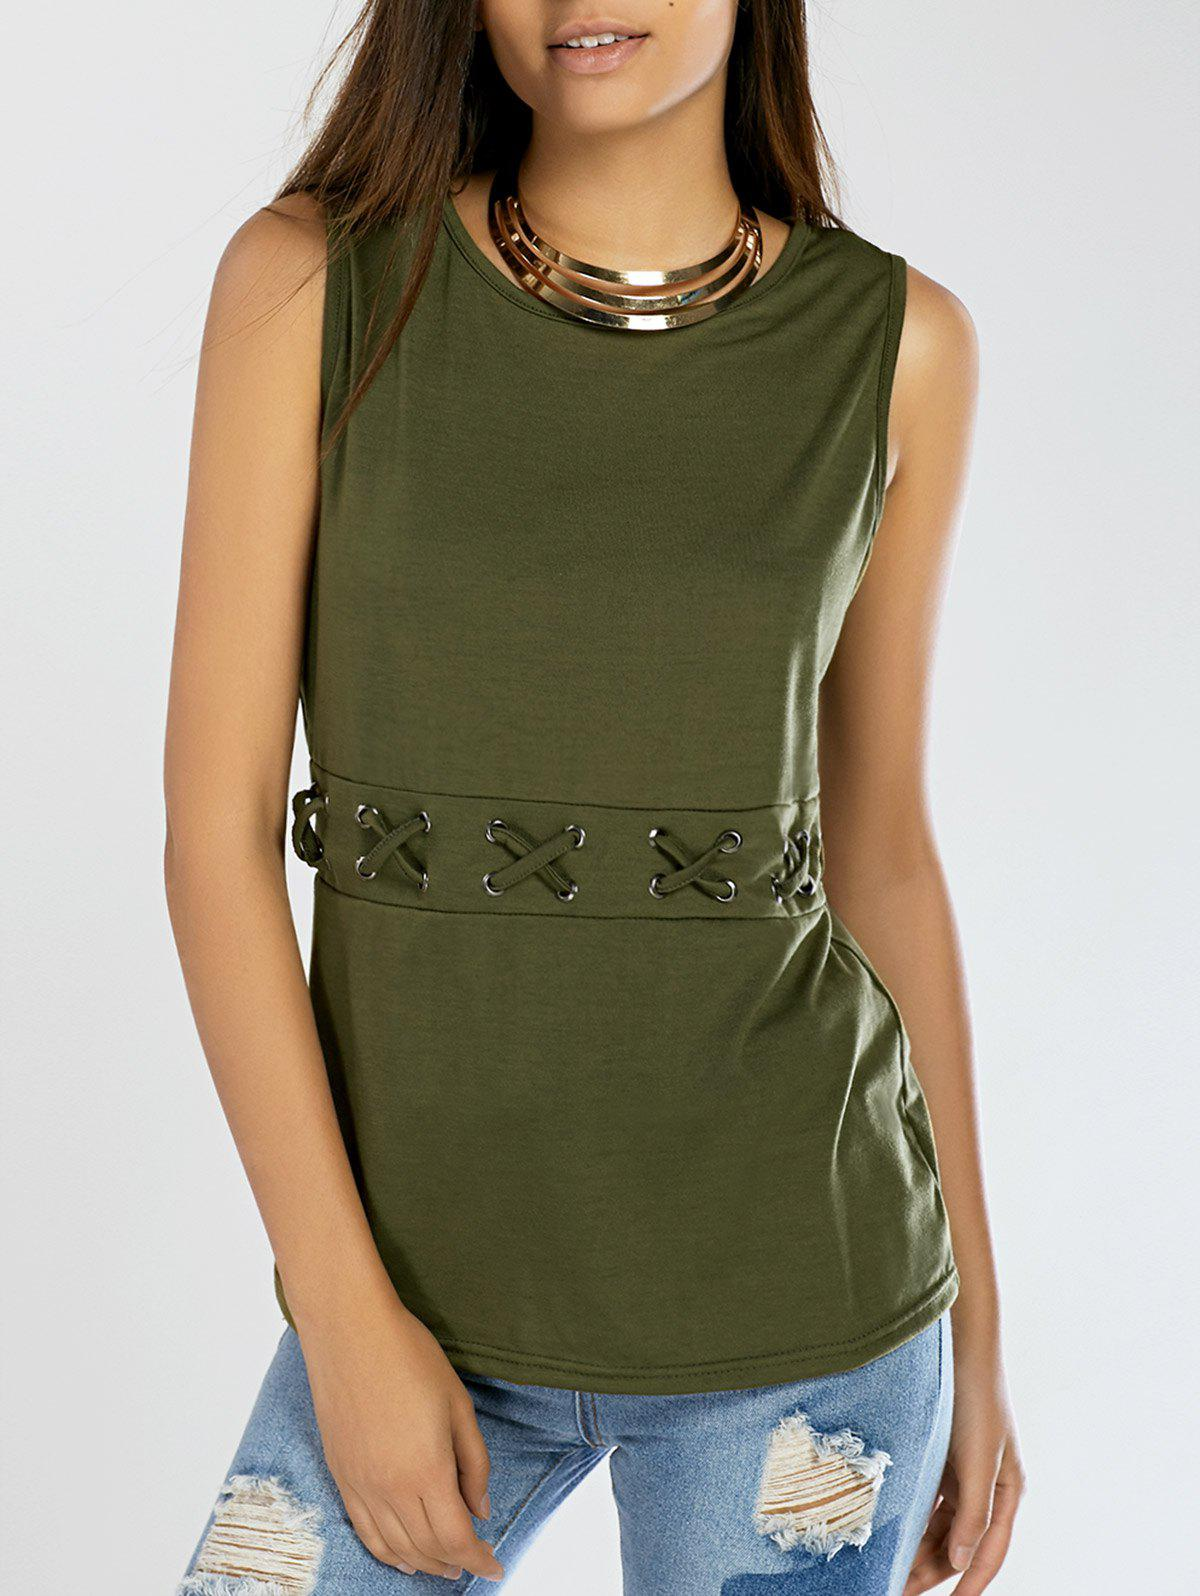 Lace-Up Pure Color Tank Top - ARMY GREEN S